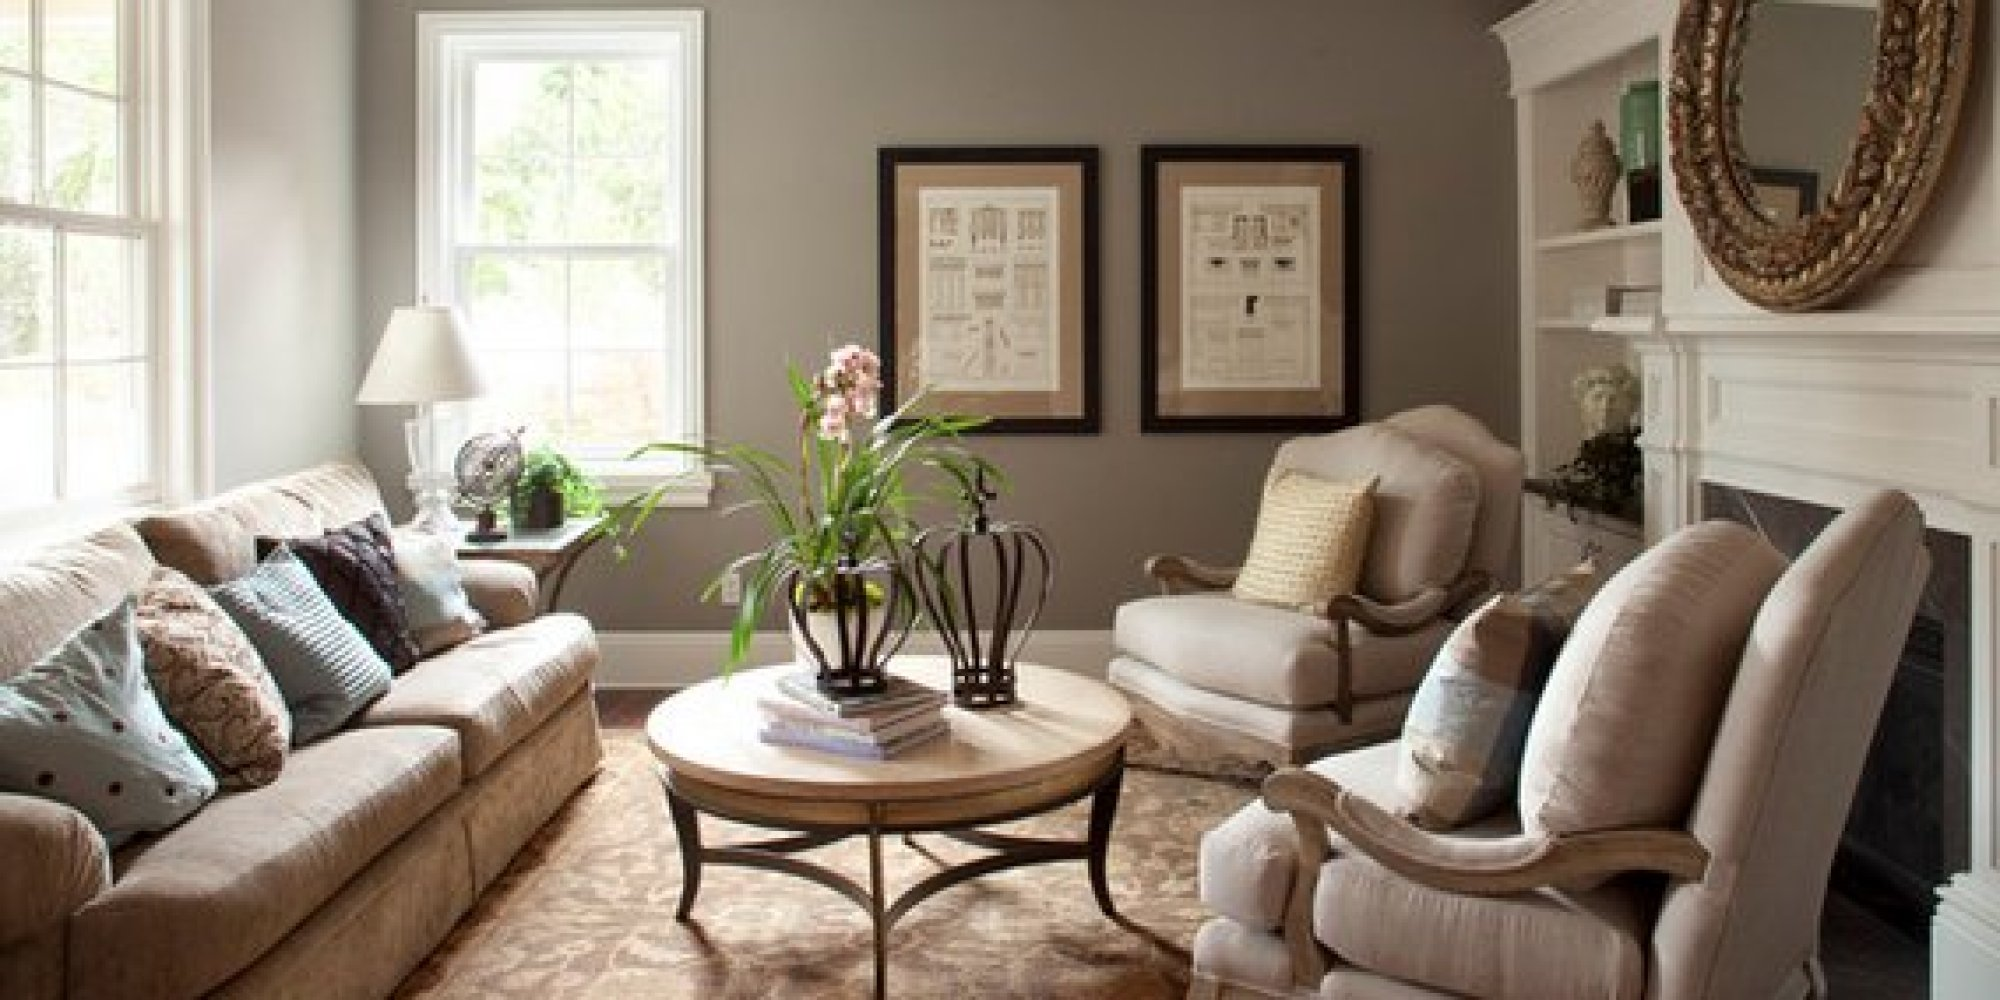 Neutral Colors For Living Room Walls The 6 Best Paint Colors That Work In Any Home Huffpost